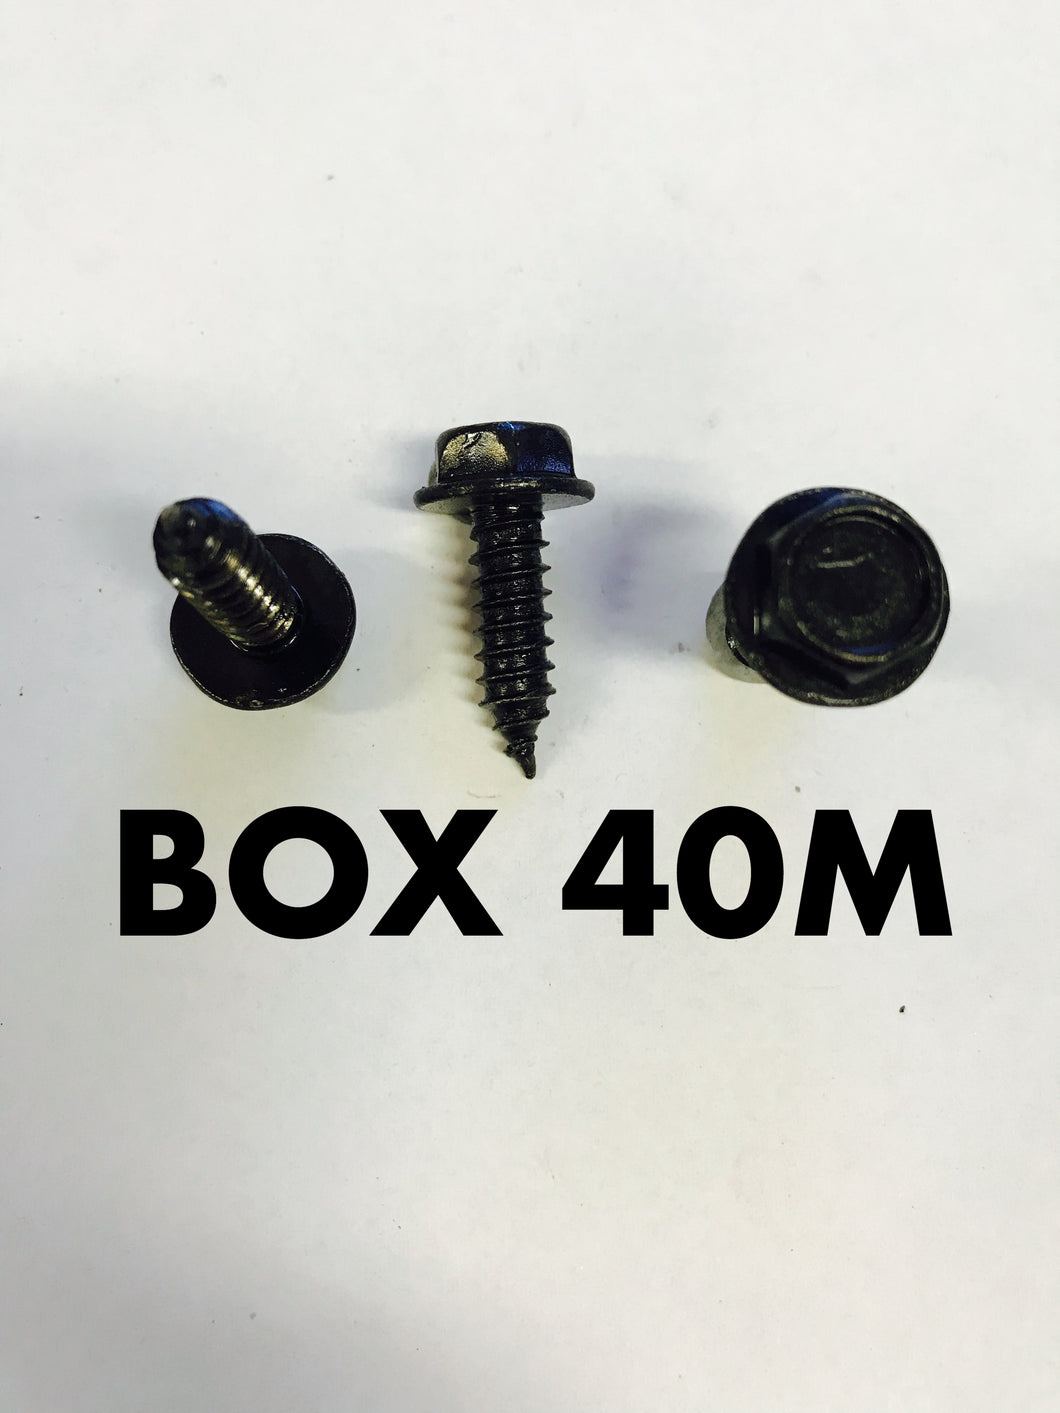 Carclips Box 40M M6 x 3/4 Black Screws - Colourfast Auto